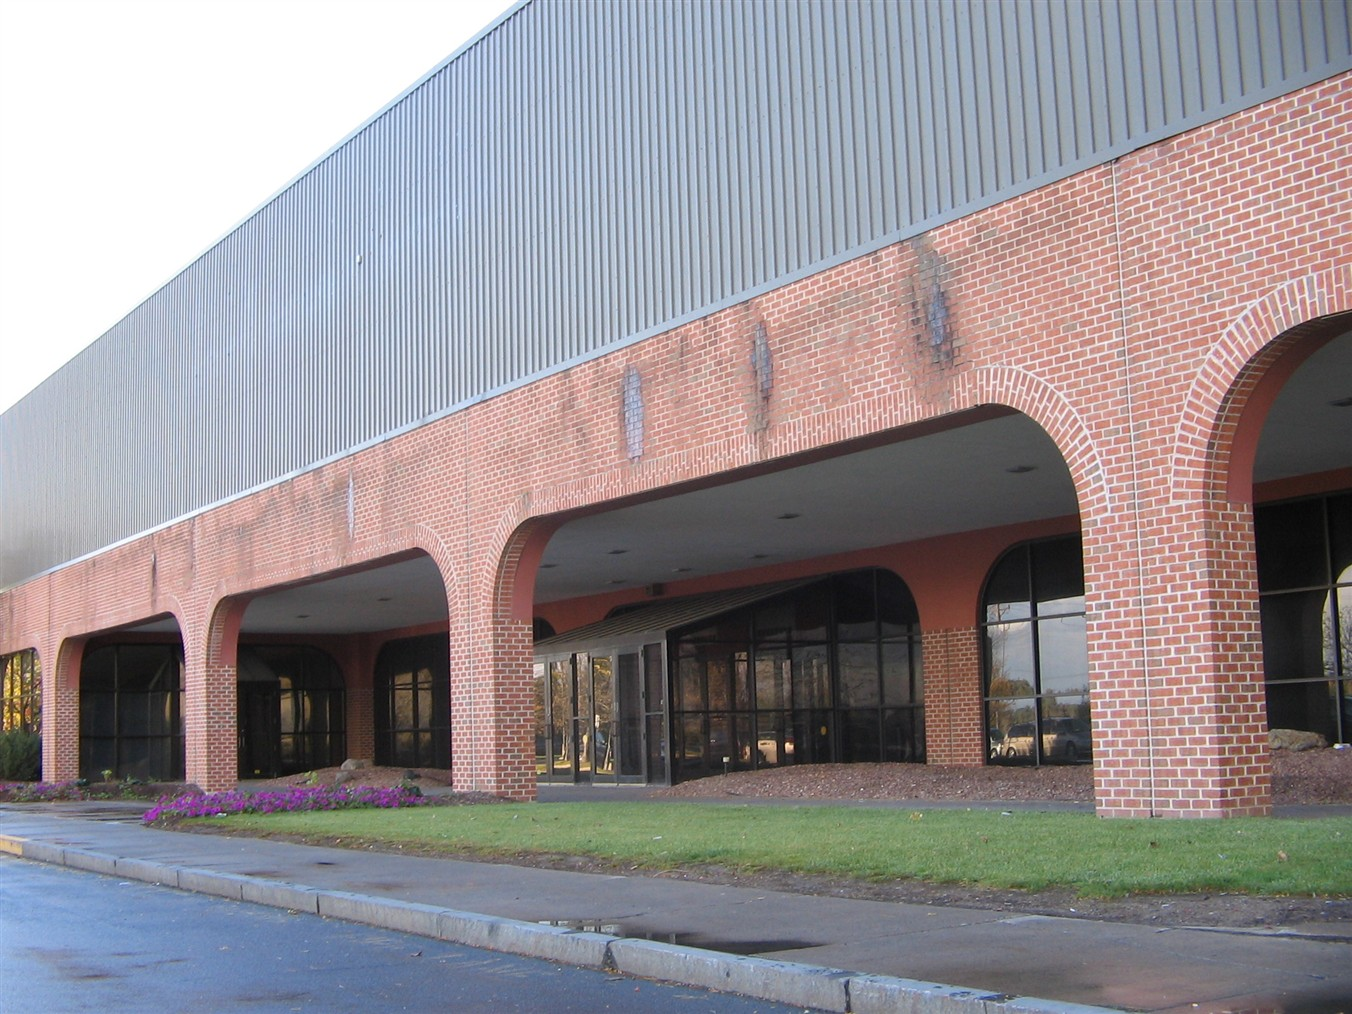 Former Bon Ton store at Shoppingtown Mall in DeWitt, New York